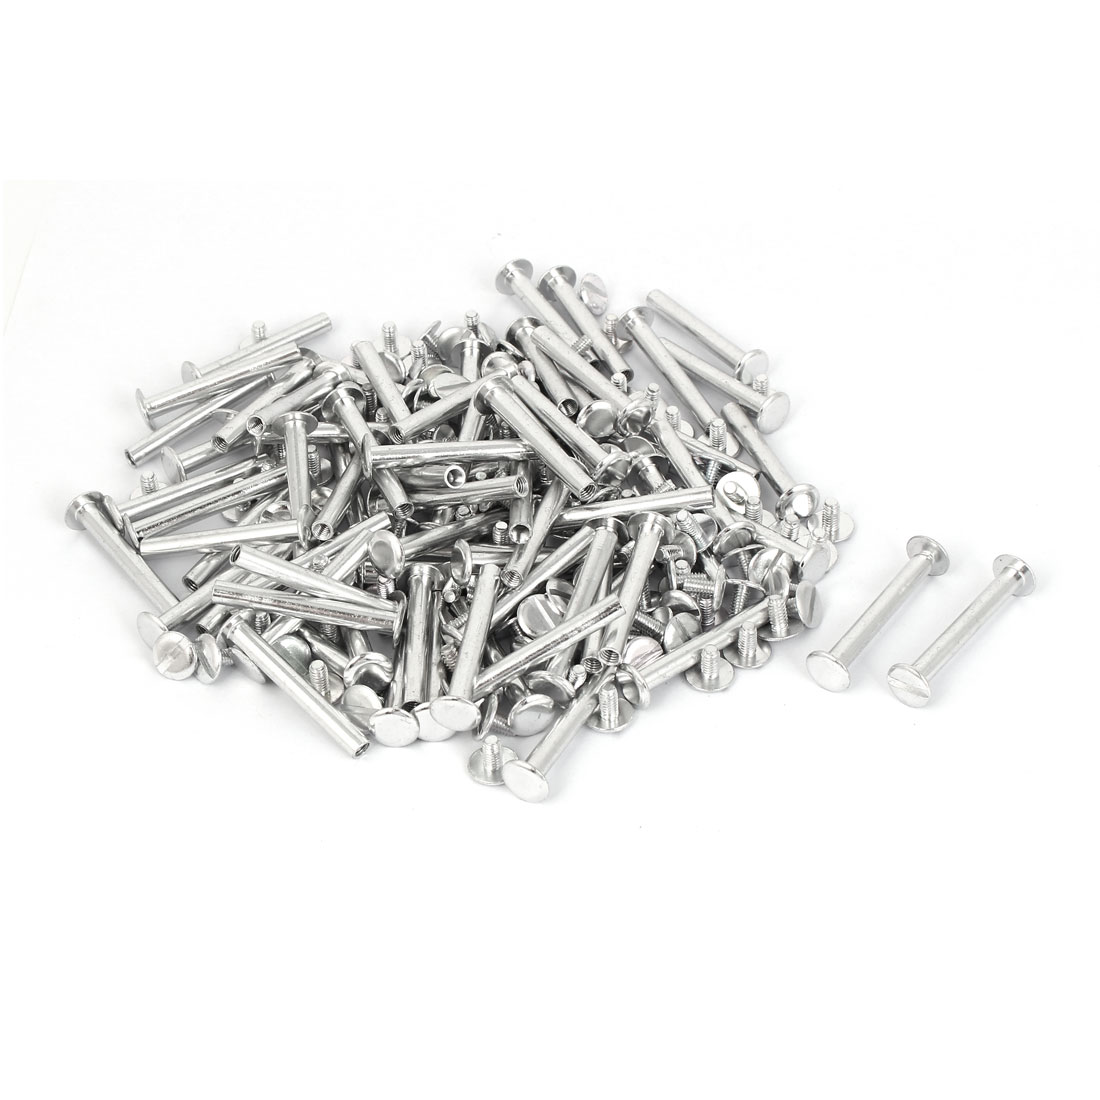 M5x38mm Aluminum Chicago Screws Binding Posts Silver Tone 100pcs